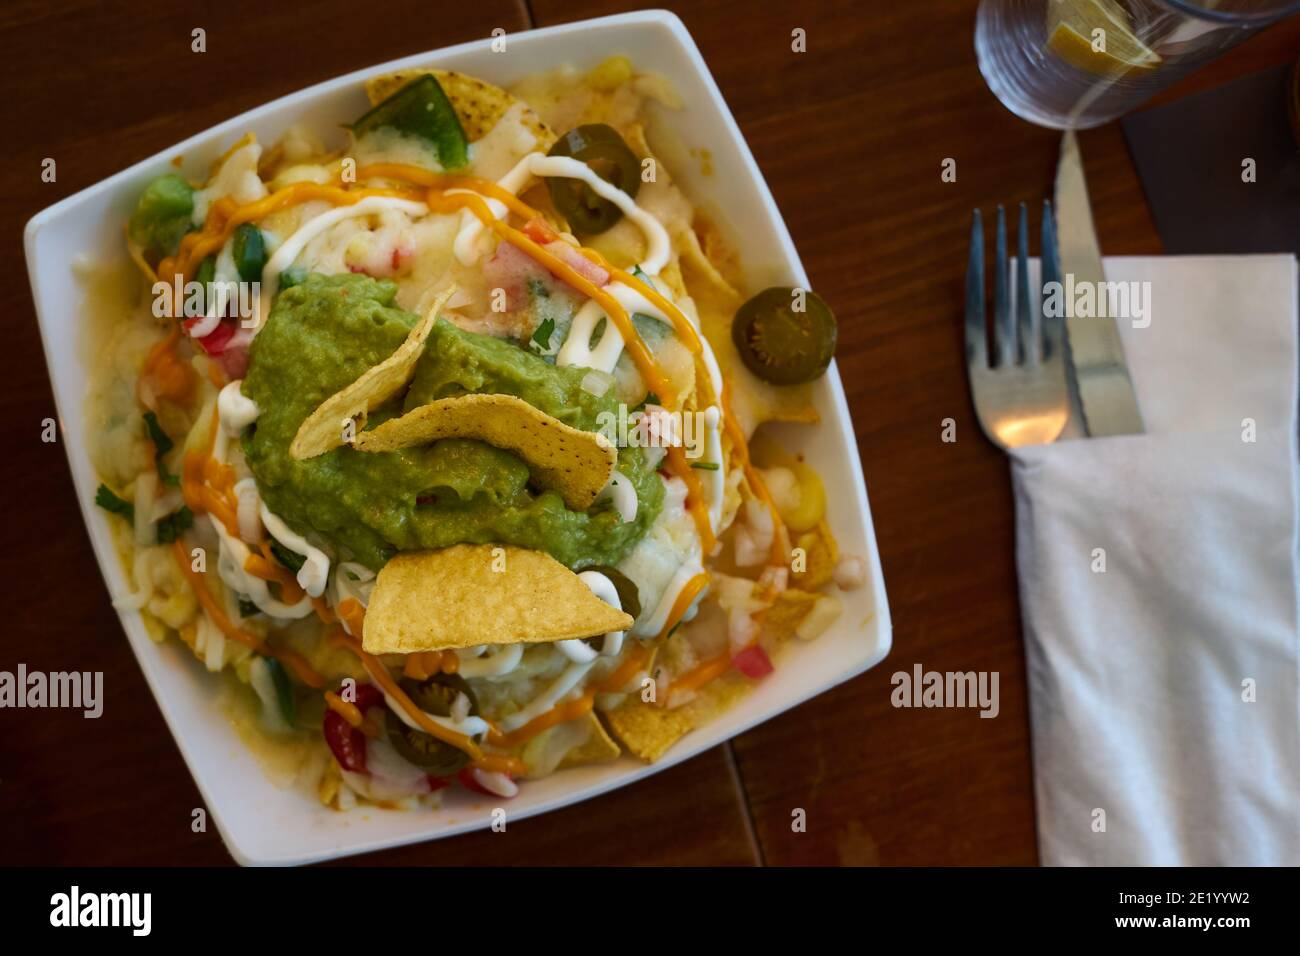 Mexican dish, nachos with cheese and vegetables, selective focus Stock Photo